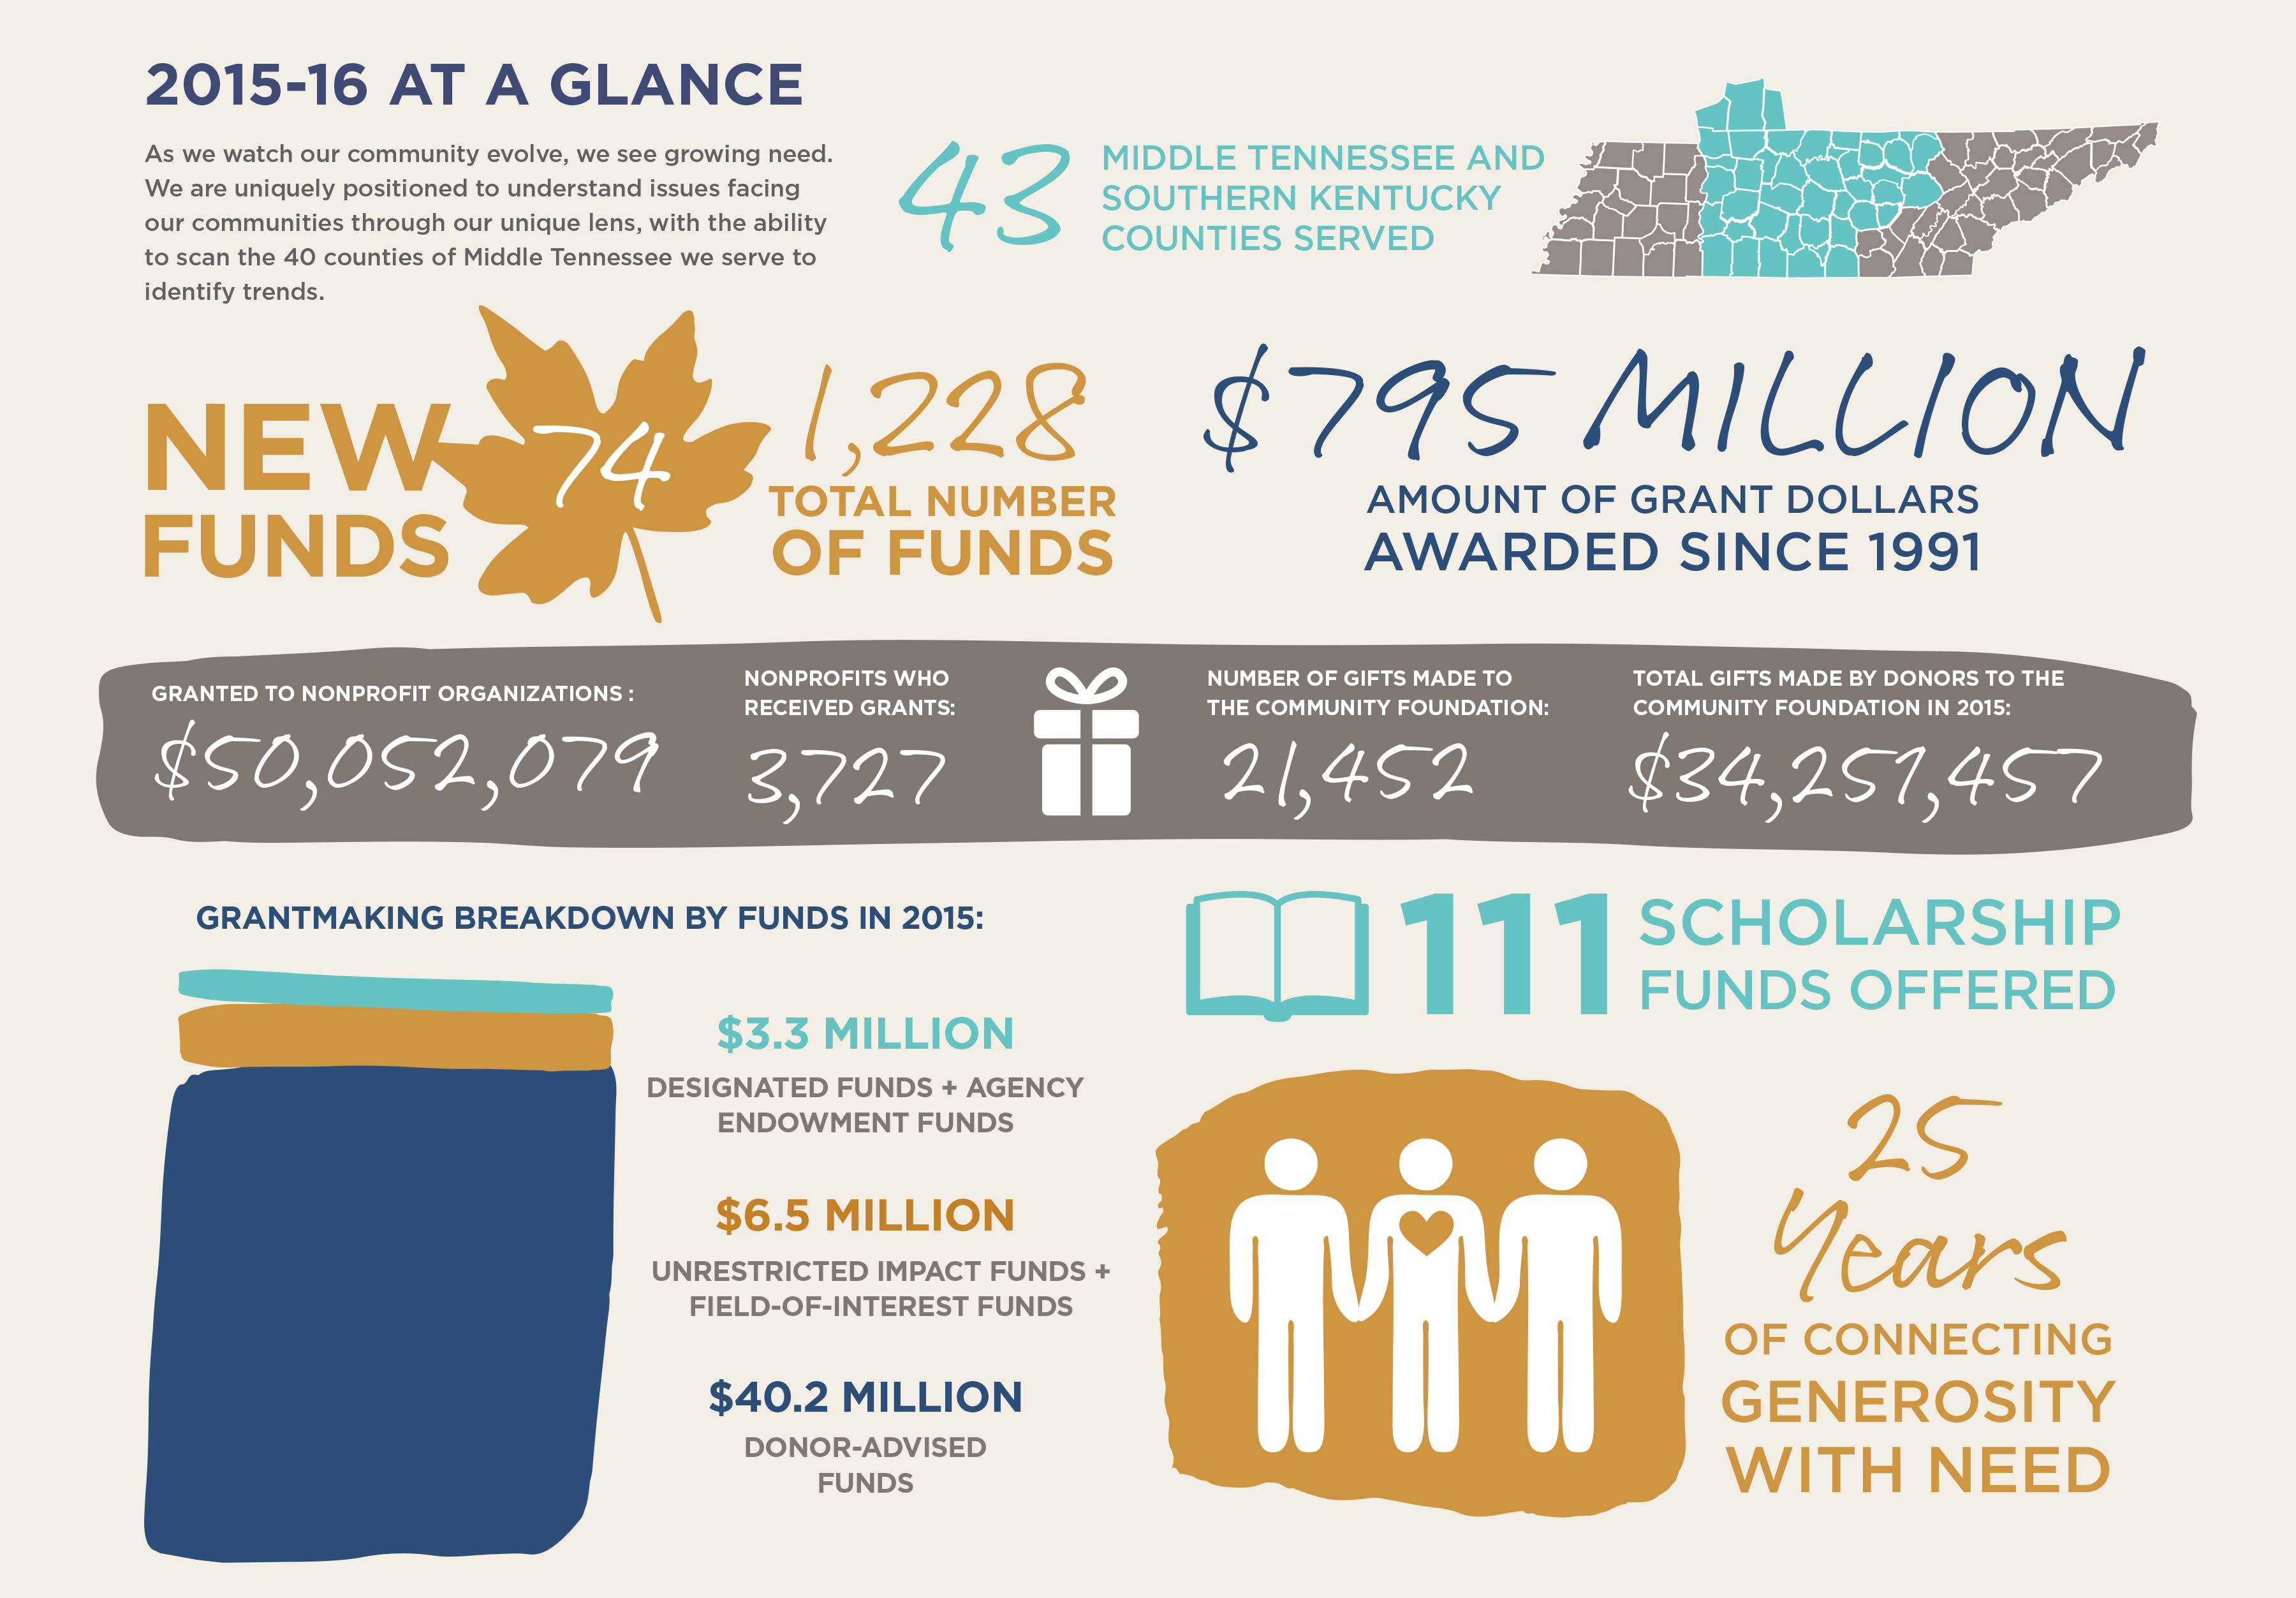 The Community Foundation of Middle Tennessee 2015 Financial Report